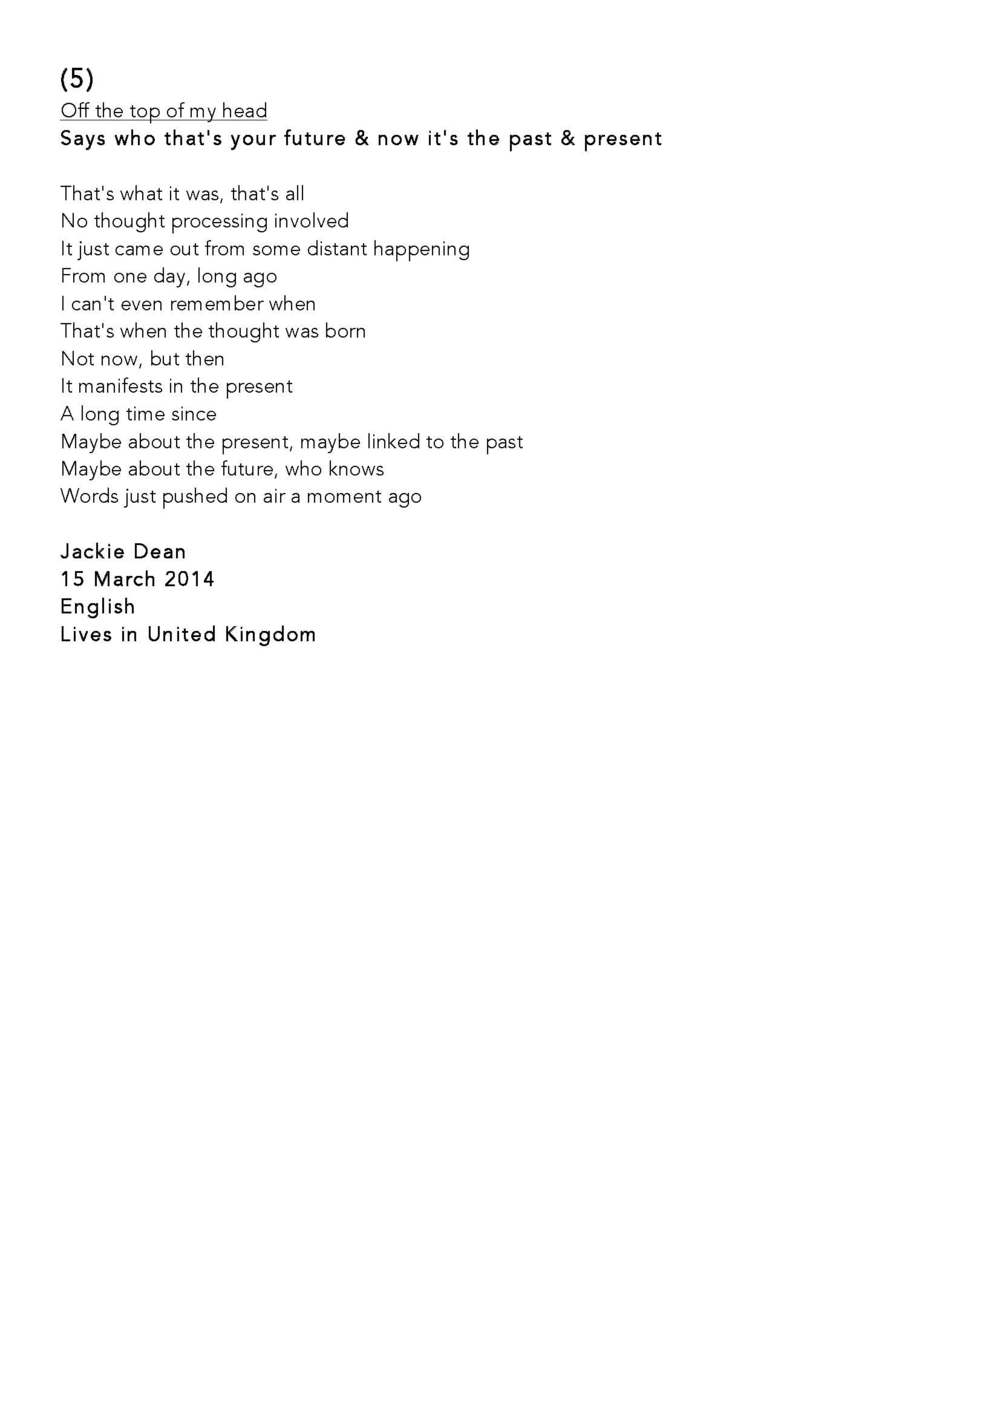 Poetry Collection - Everyone can Poetry_March 2014_Page_5.jpg